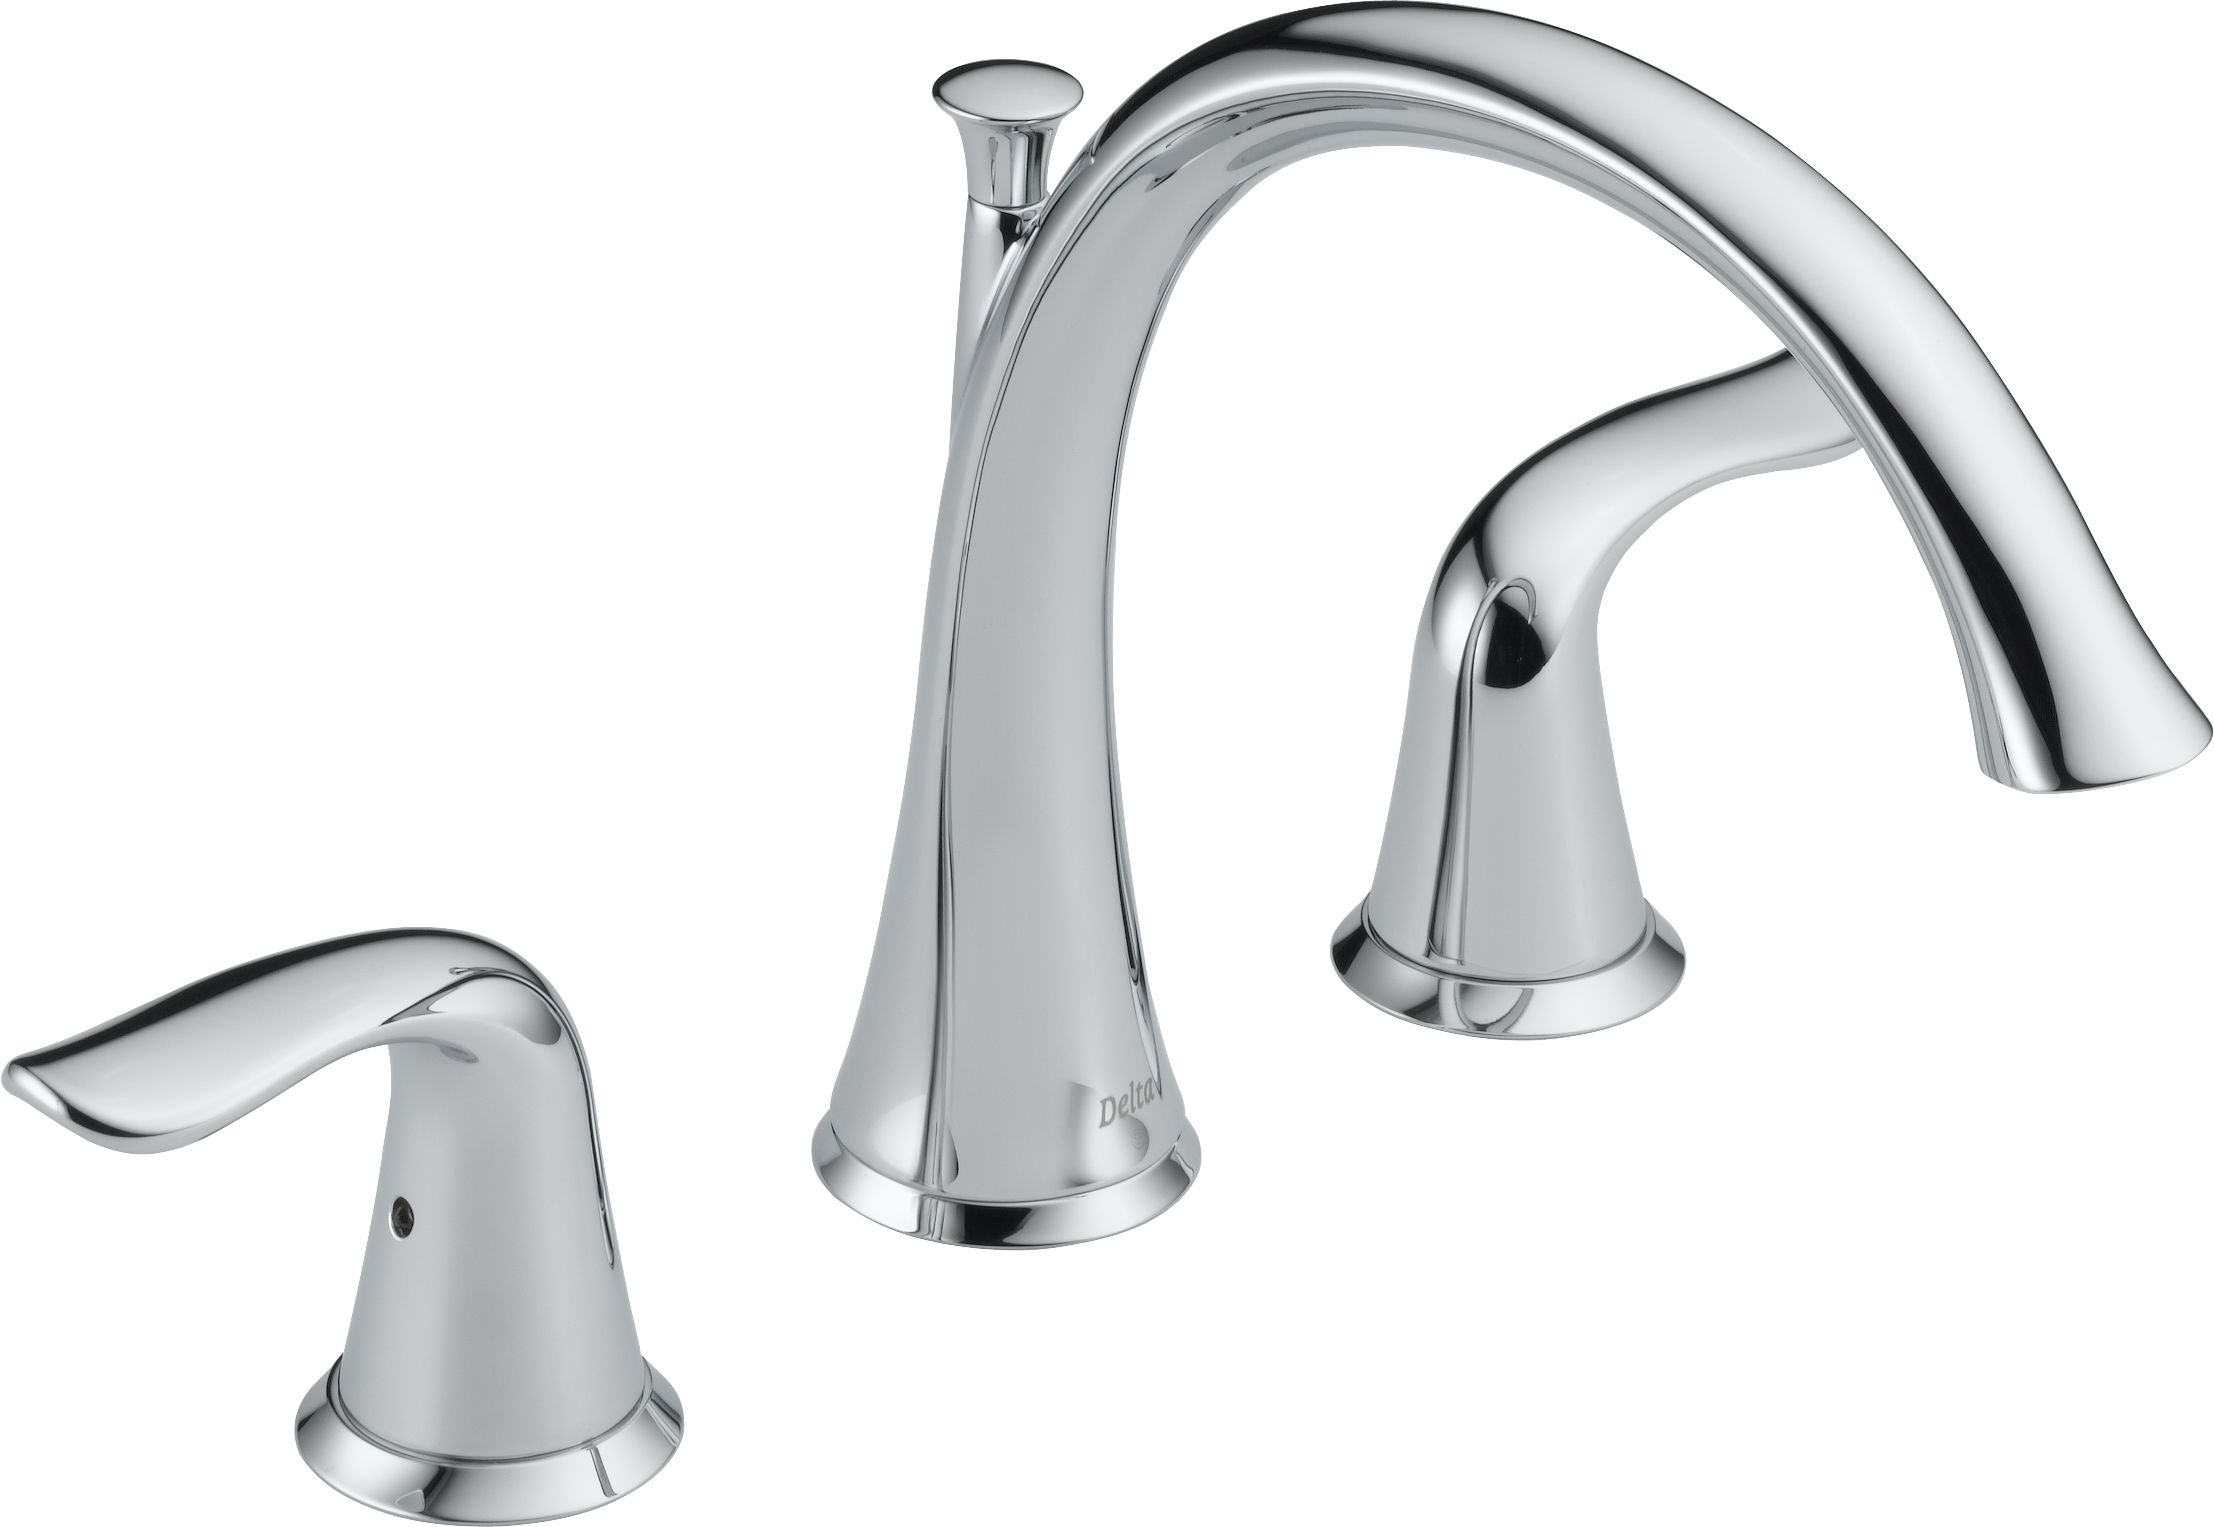 Delta T2738 Chrome Lahara Deck Mounted Roman Tub Filler Trim   Faucet.com